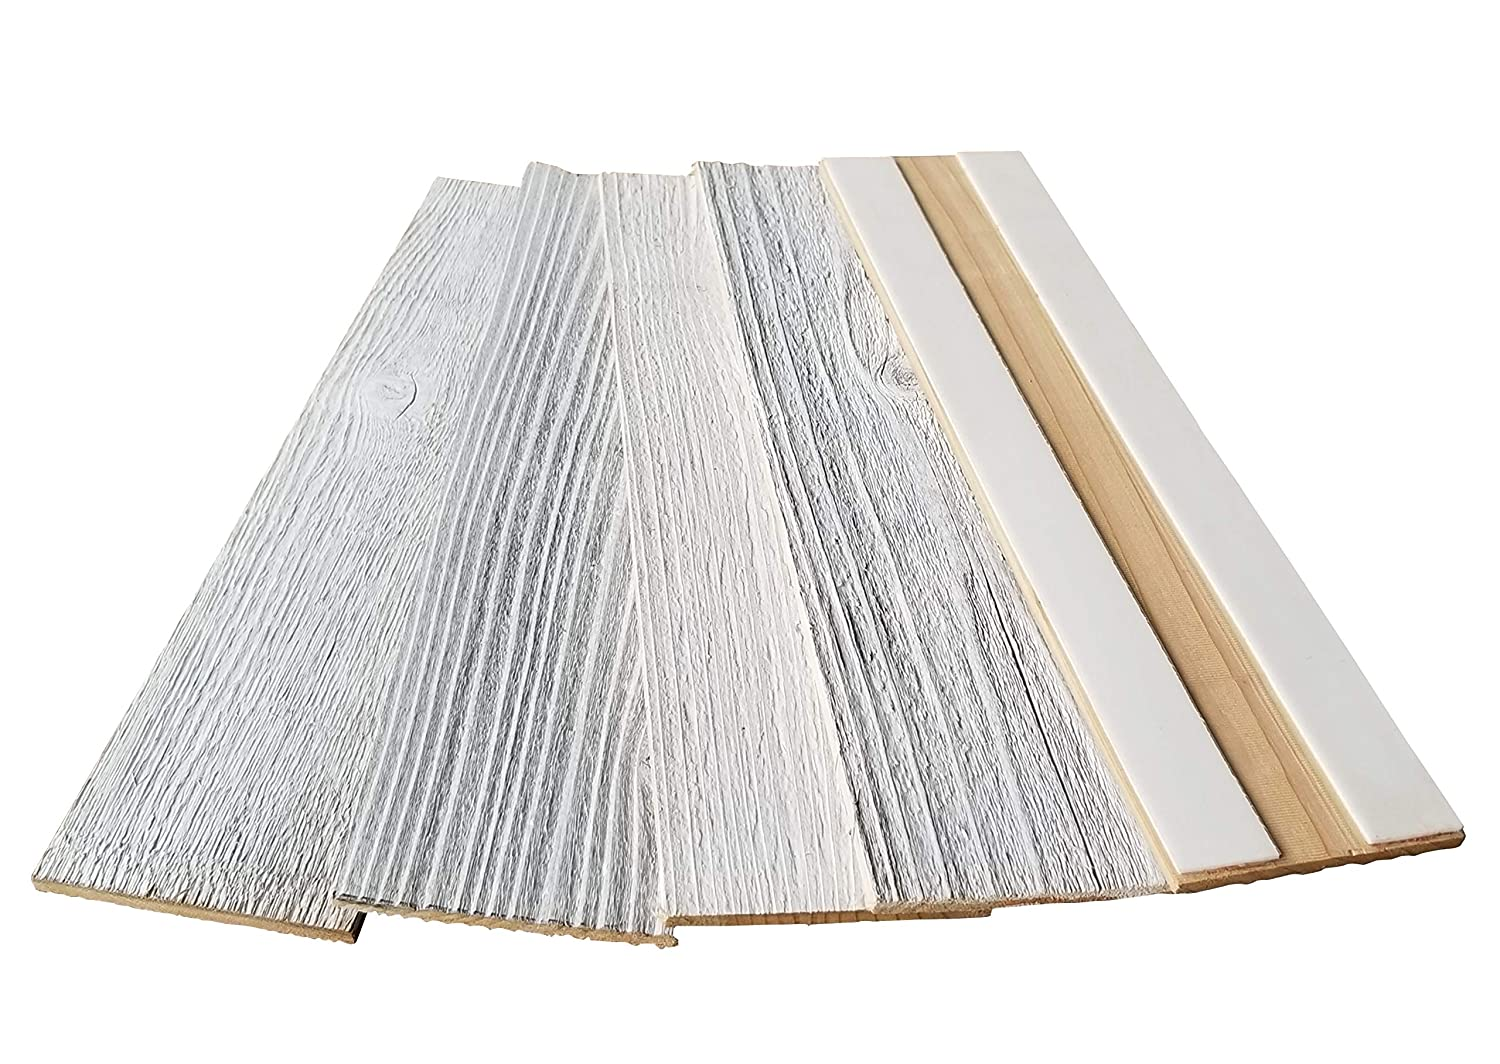 Whitewash Reclaimed Barn Wood Wall Planks - Easy Peel and Stick Wood - 10 Sq Ft. 3 VintaWood